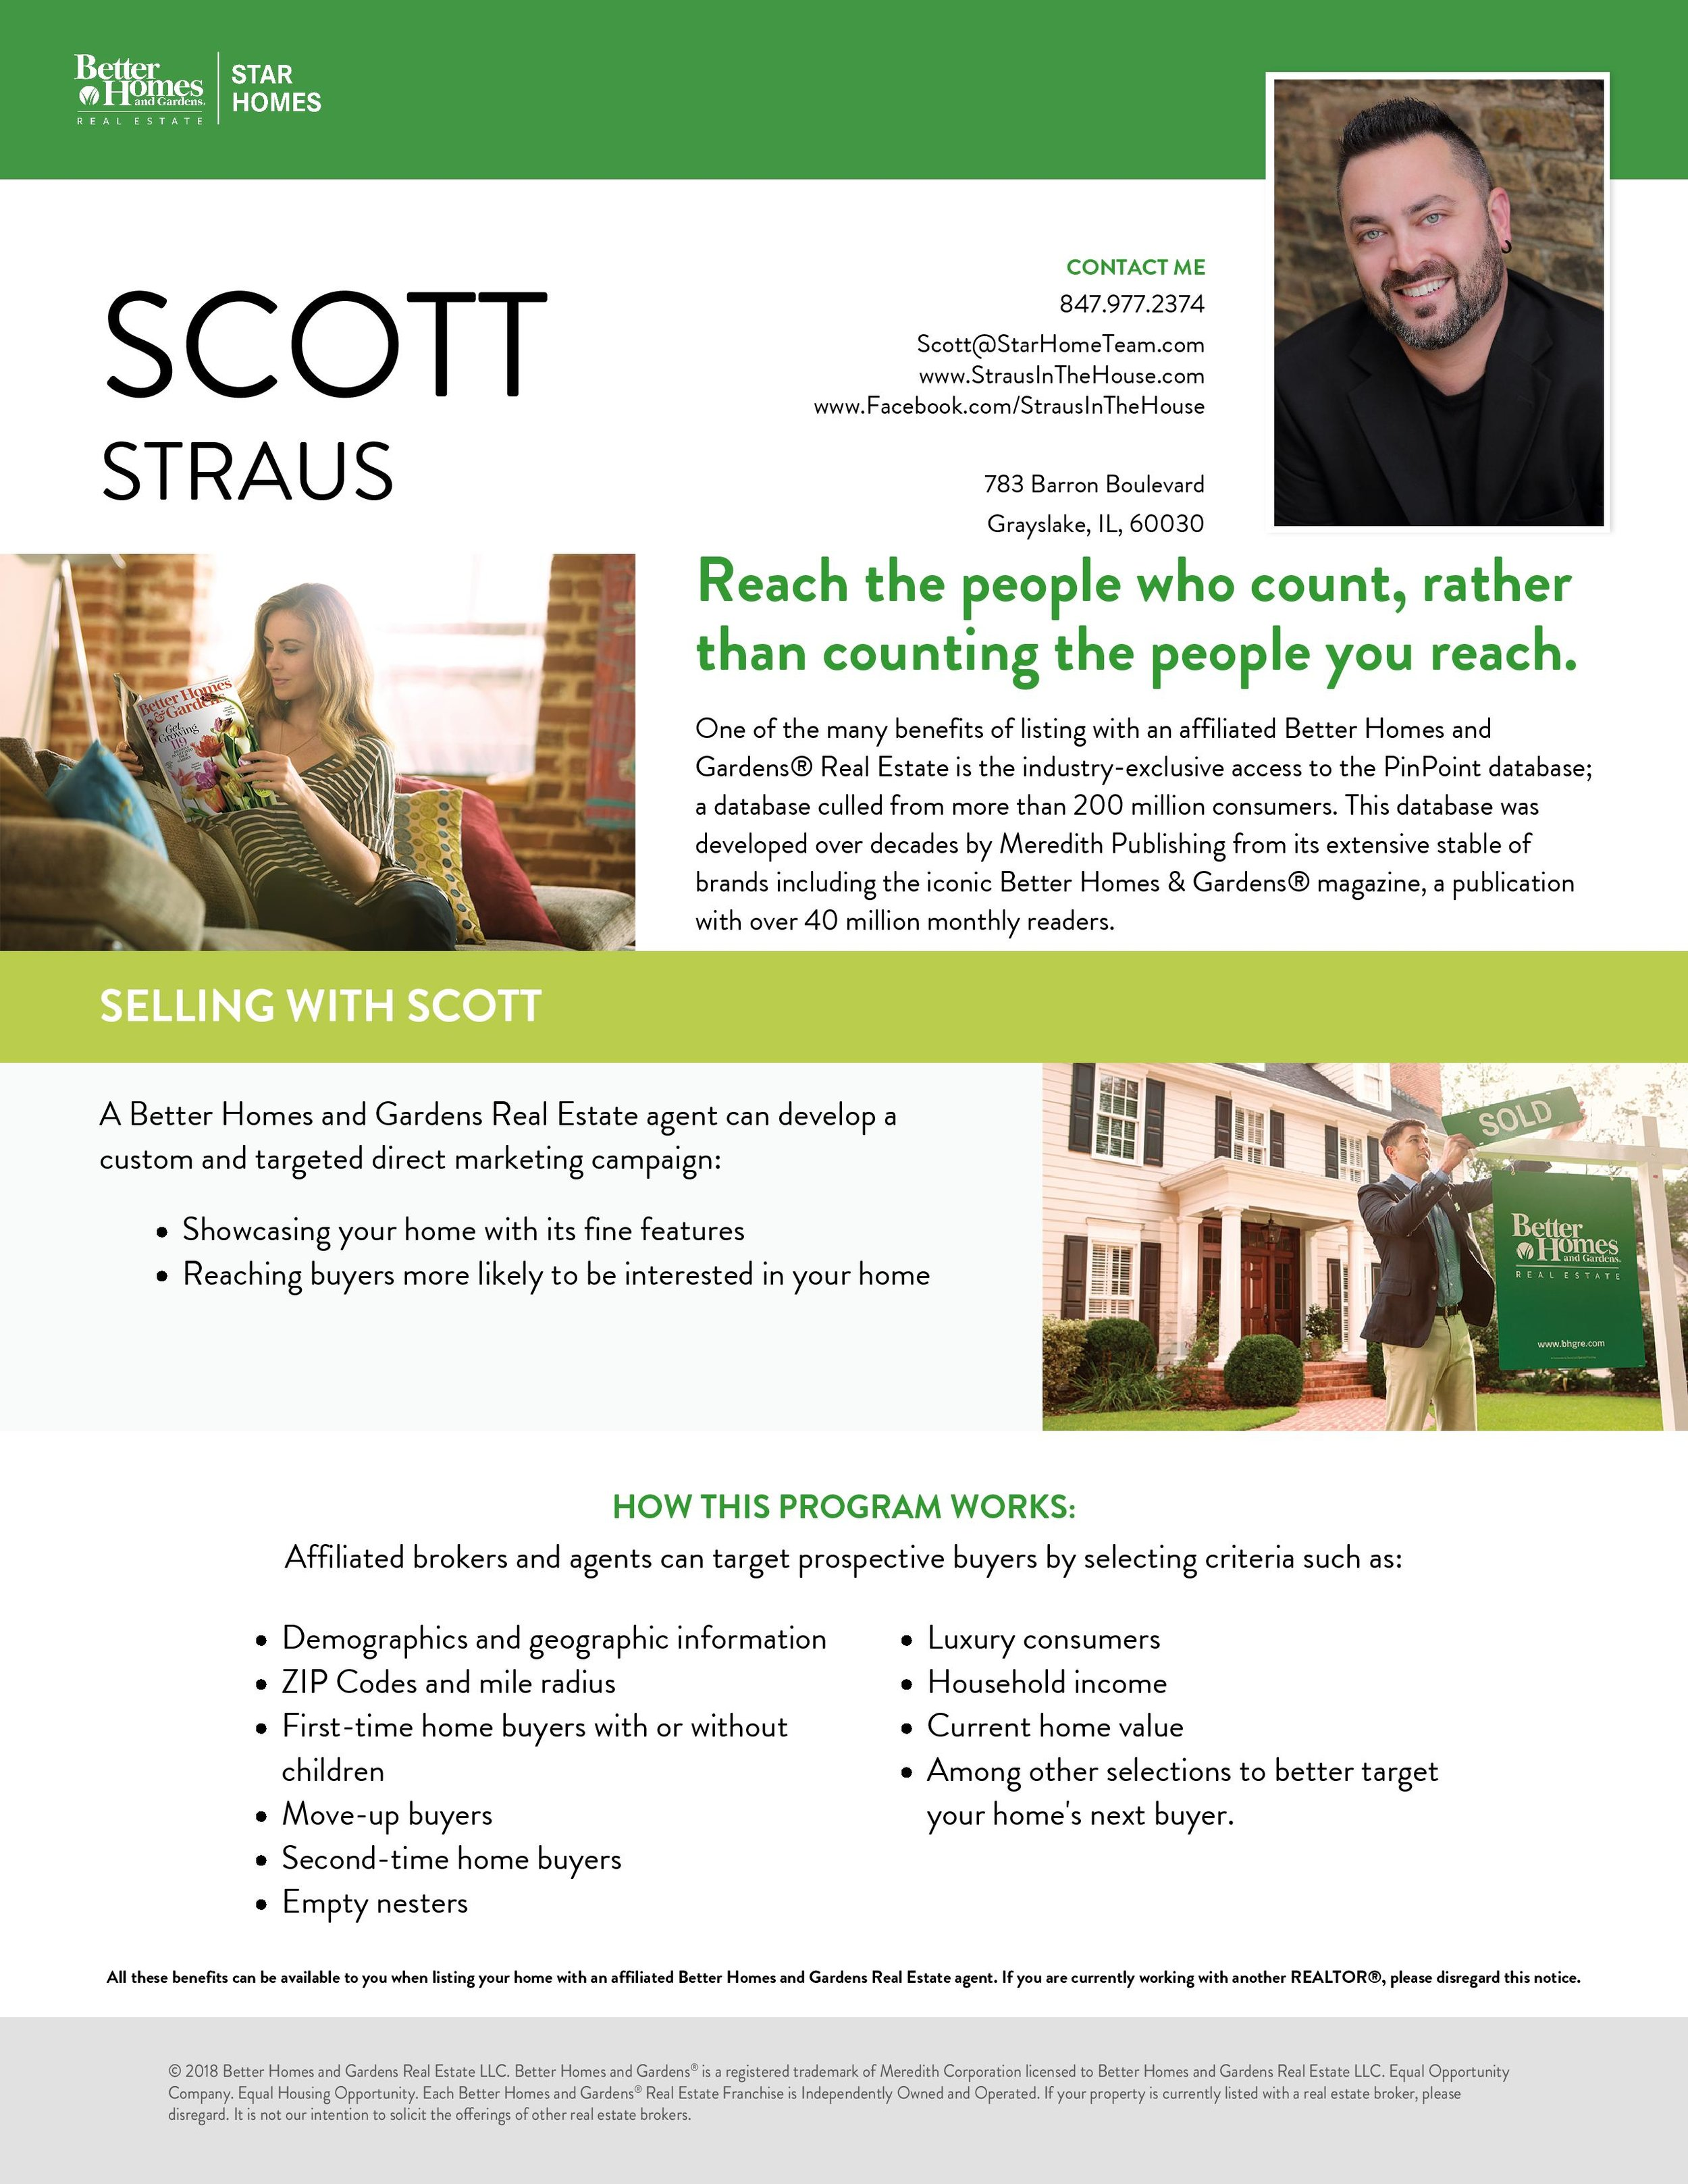 Client Info - Selling With Scott.jpg